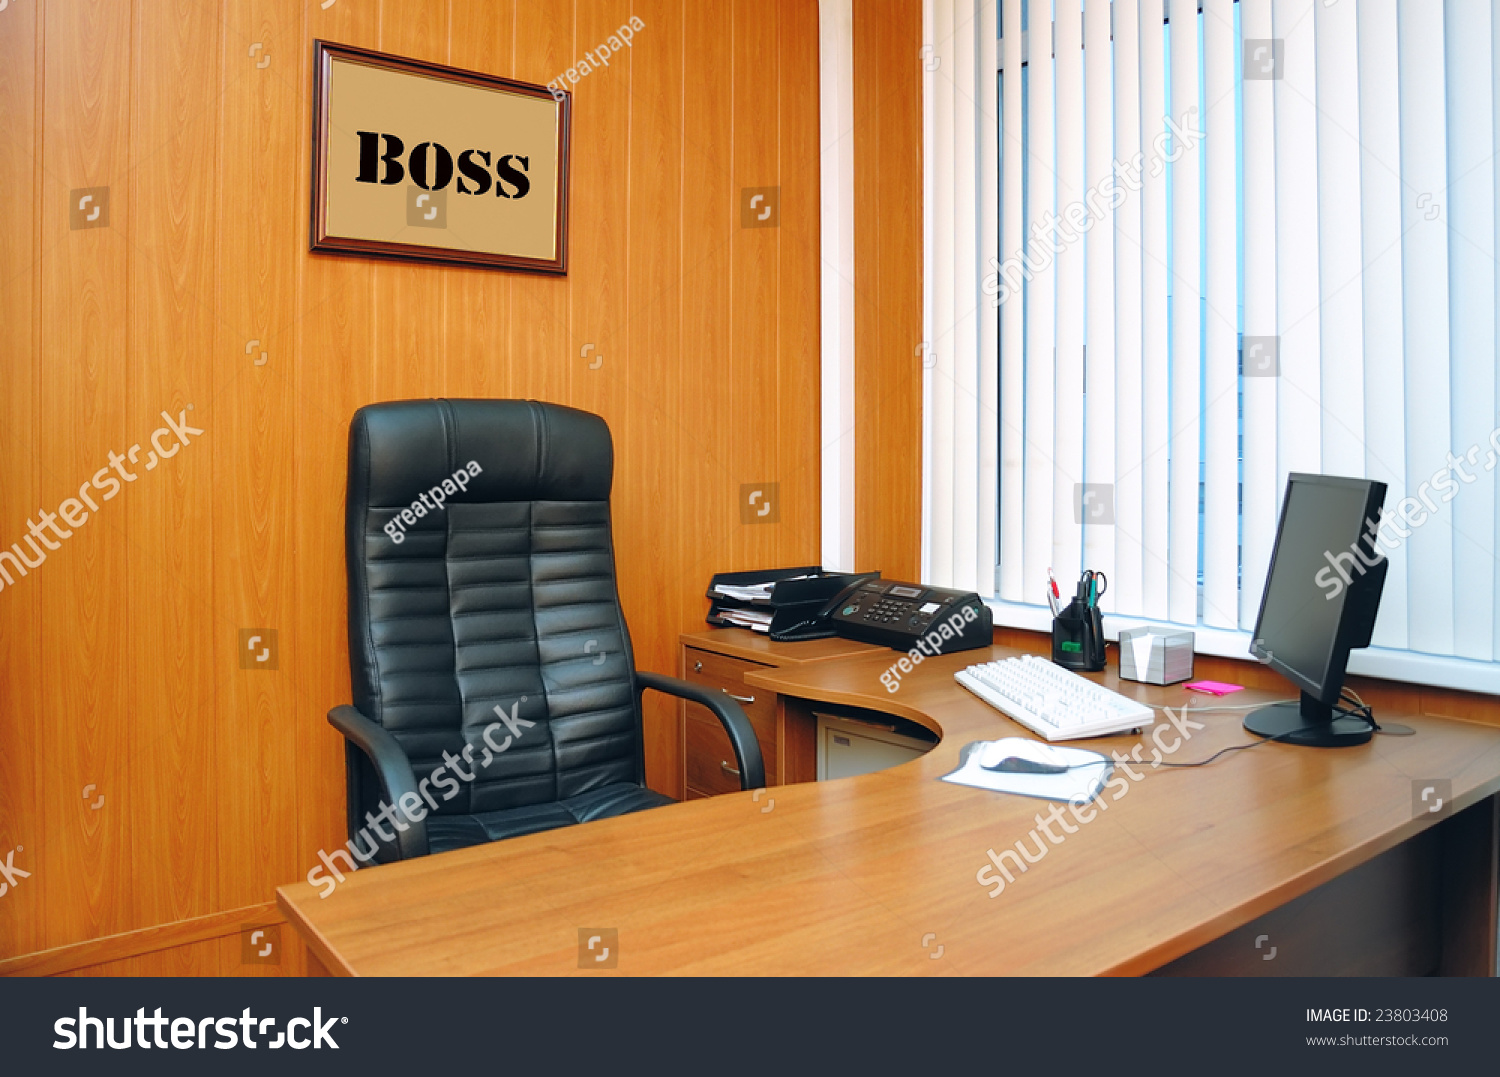 Office Boss Table Monitor Stock Photo 23803408 Shutterstock